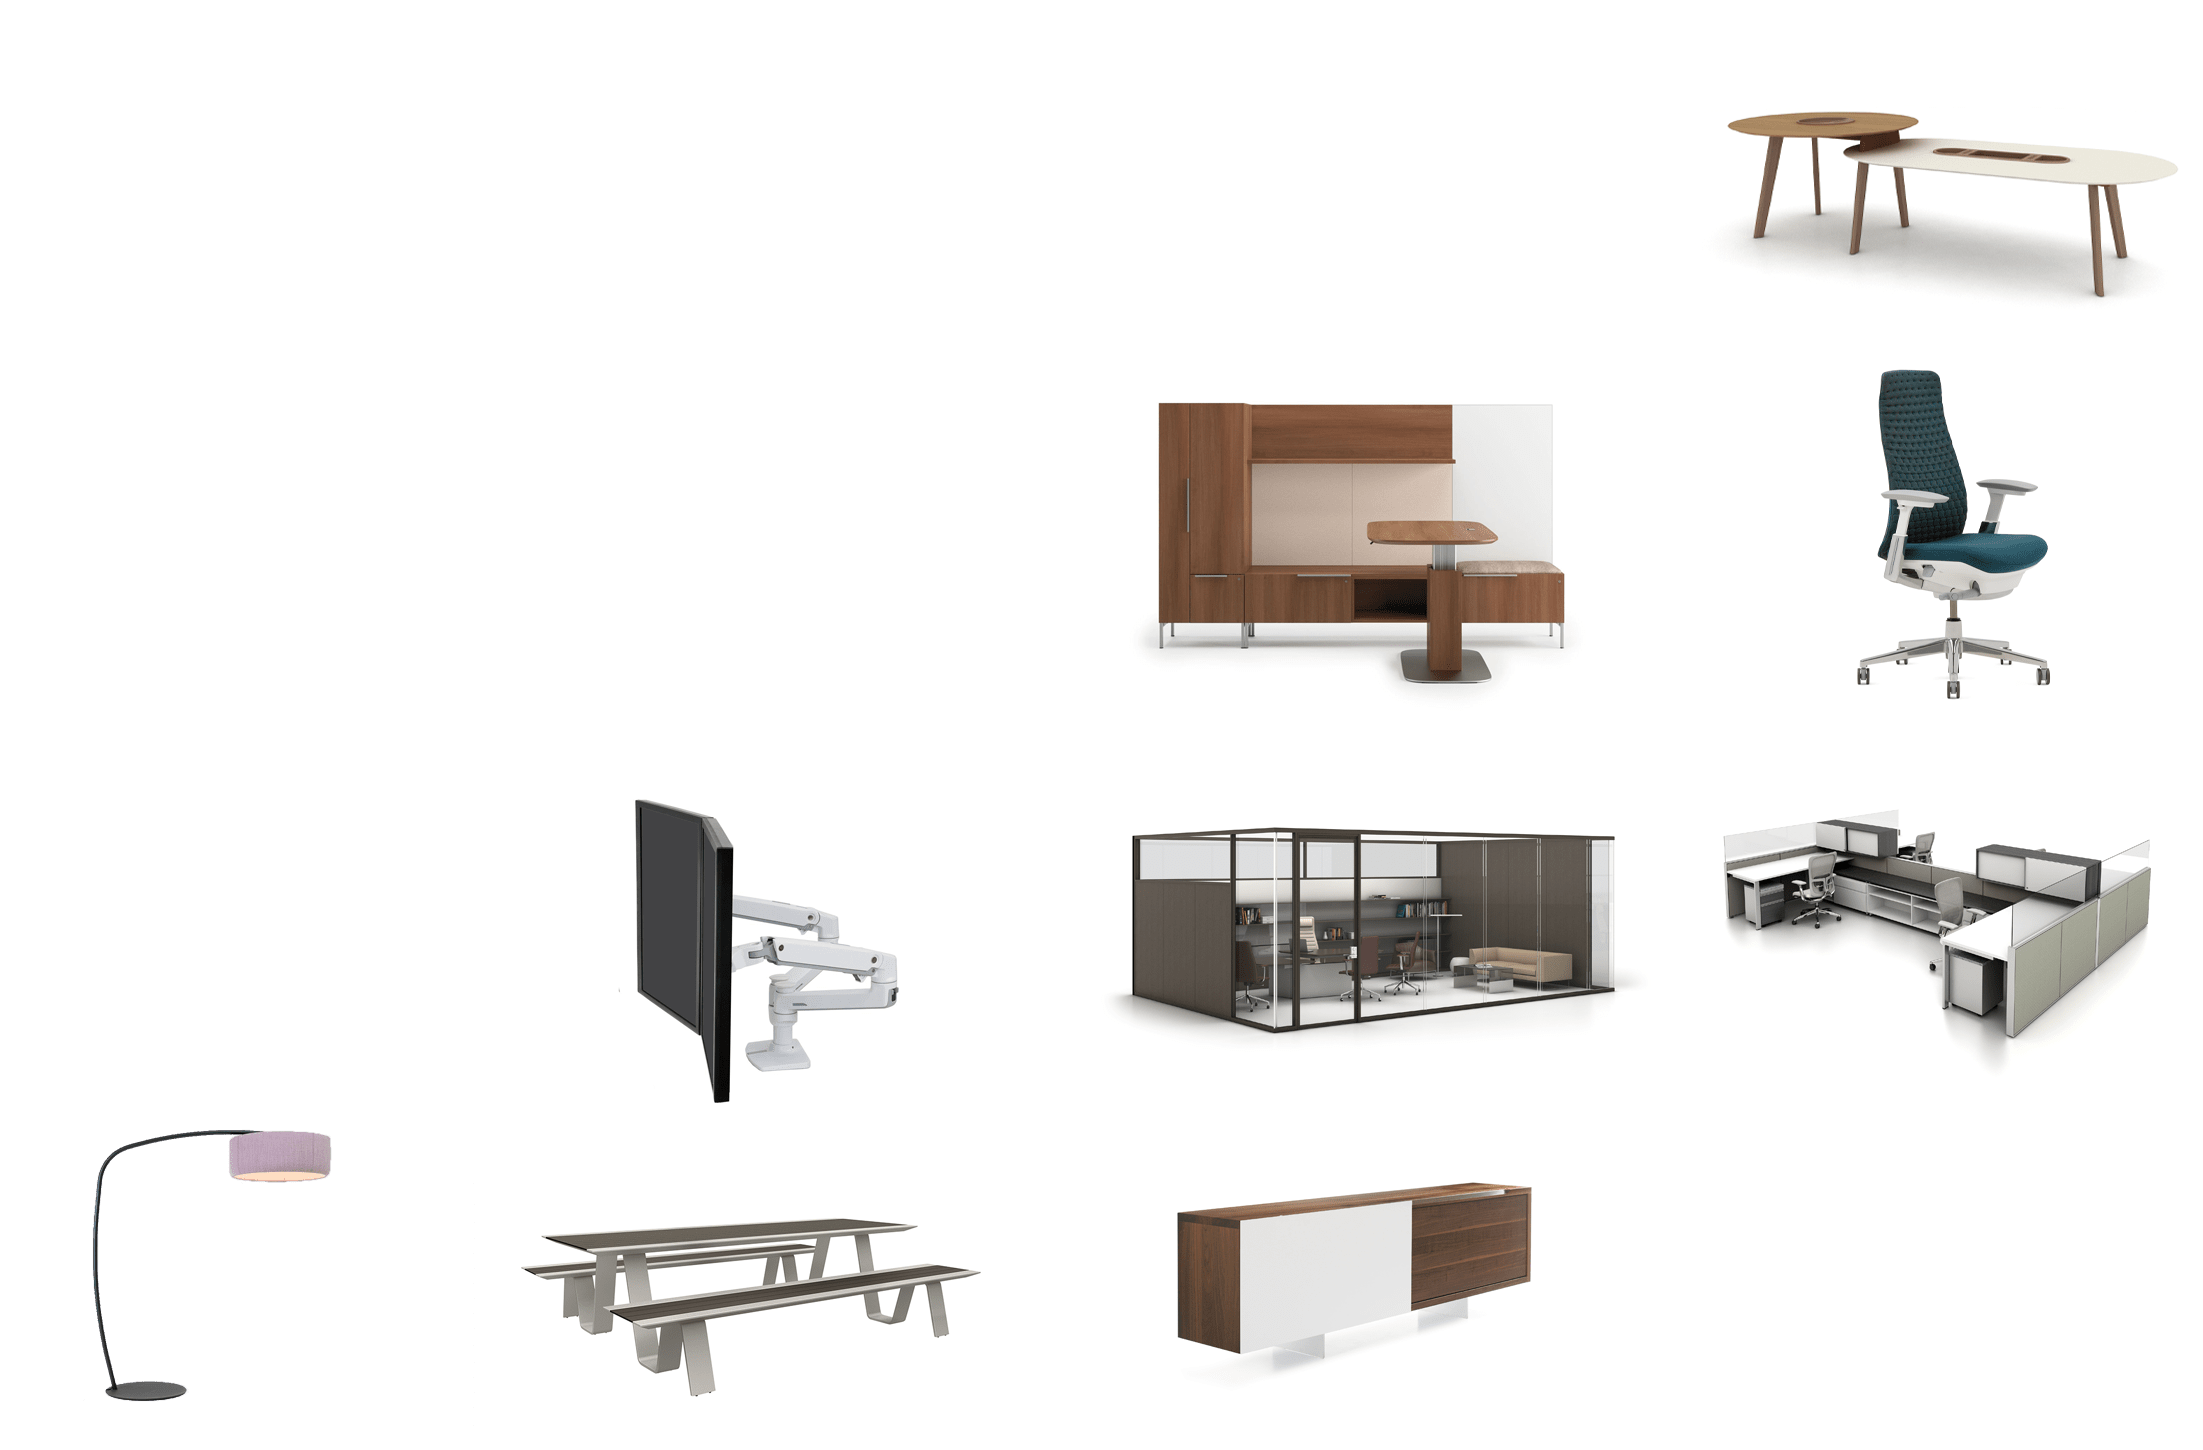 A collection of product images, including chairs, desks, tables & more